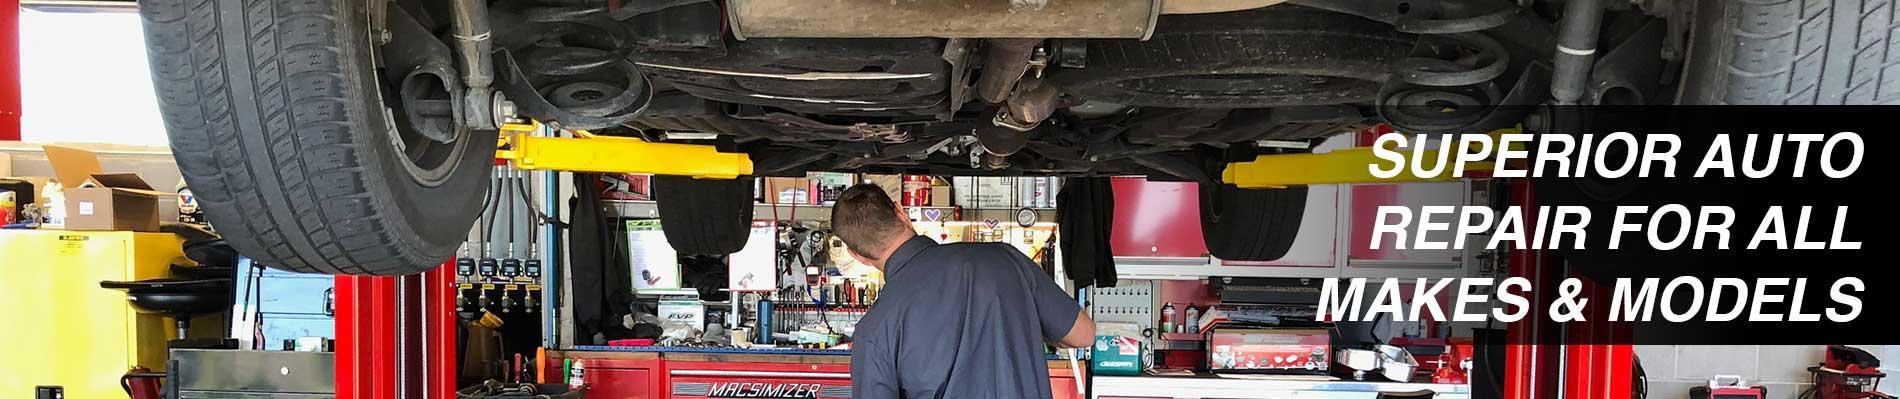 Superior Auto Repair for All Makes and Models